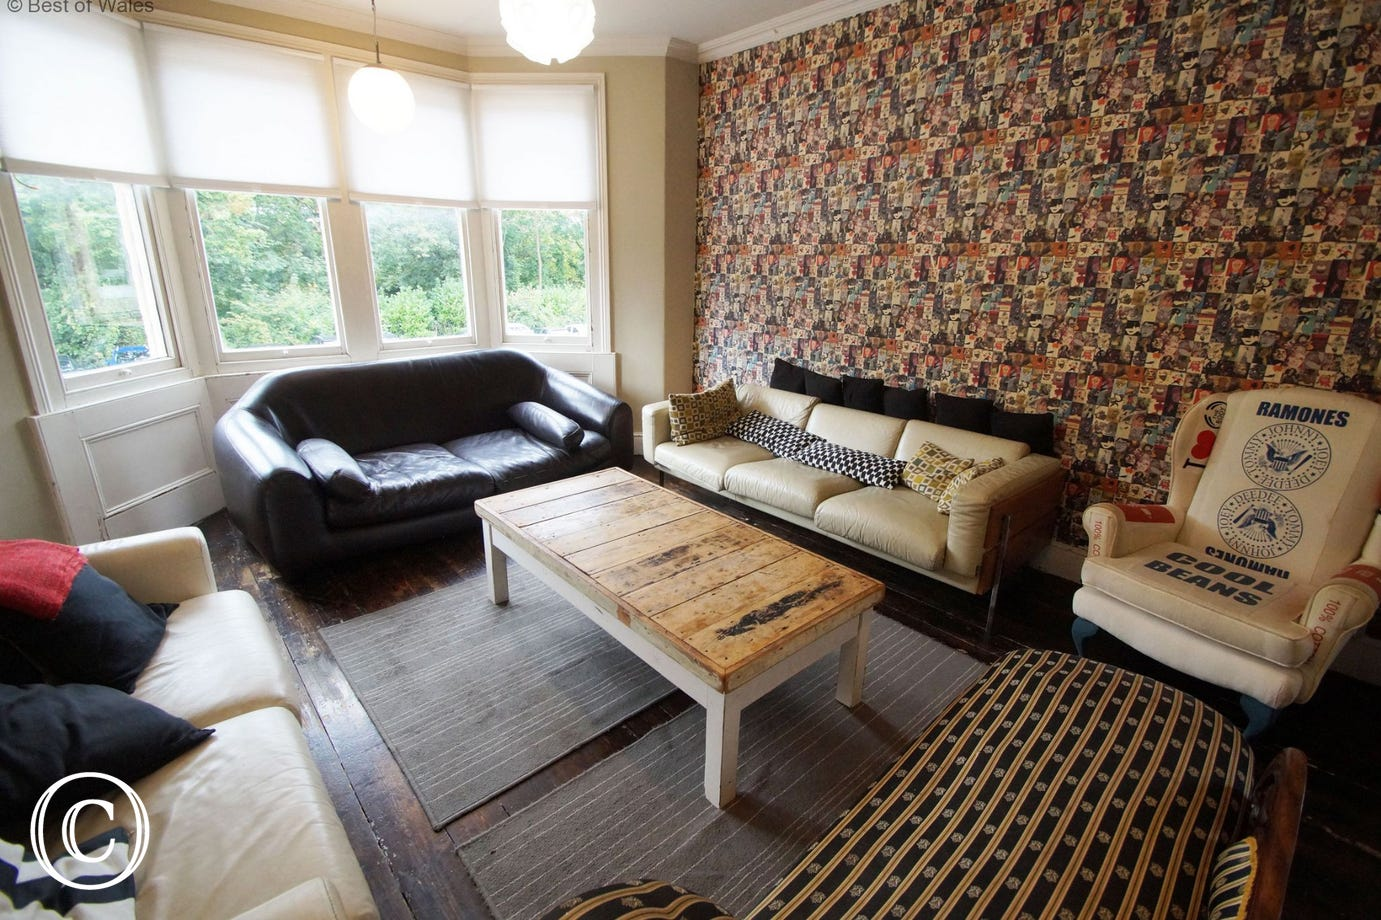 Cardiff Boutique Townhouse  -Luxury Large accommodation in Cardiff